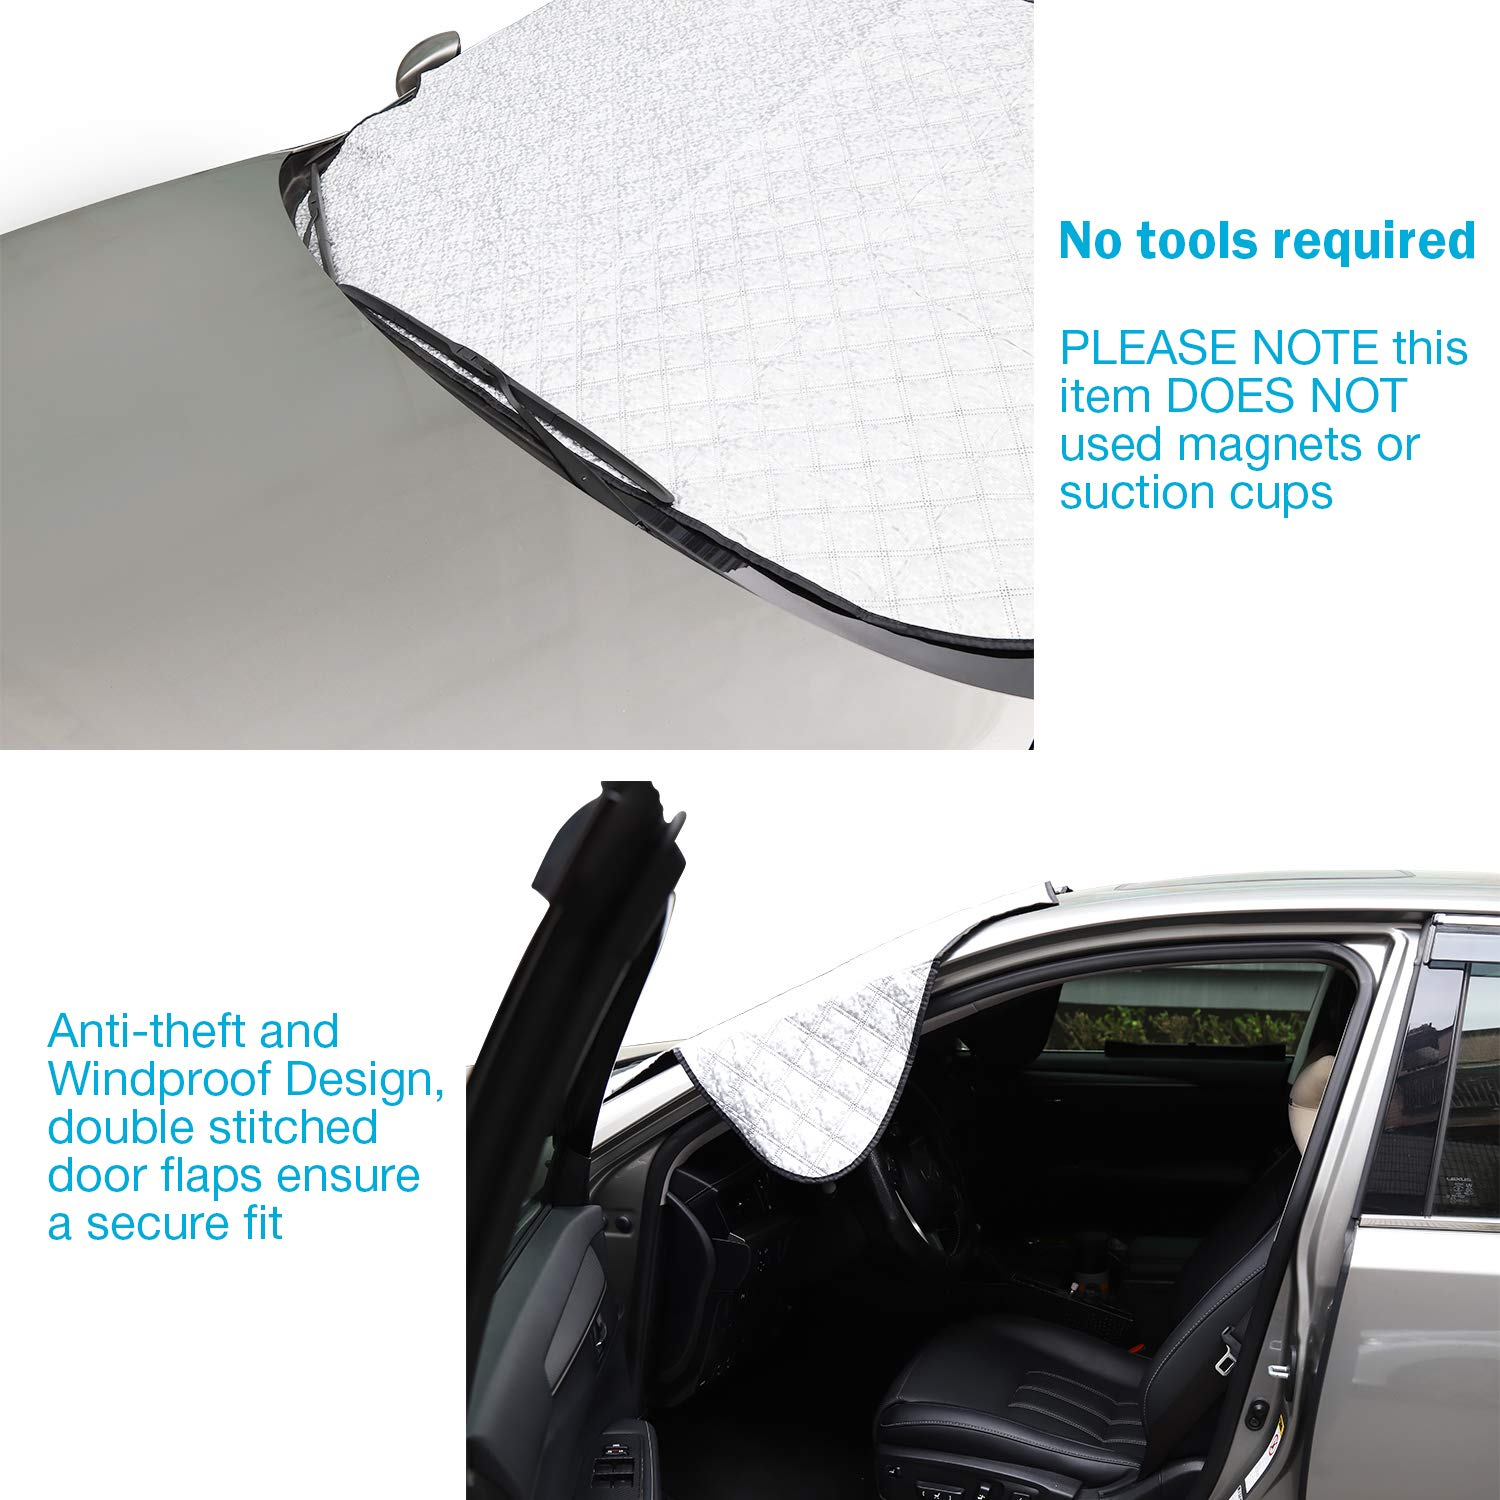 Magnetic Windshield Cover SUV Huge Size Fits Any Cars Van- Keeps Ice /& Snow Off Exterior Auto Snow Windshield Cover with Magnetic Edges Automobile Truck